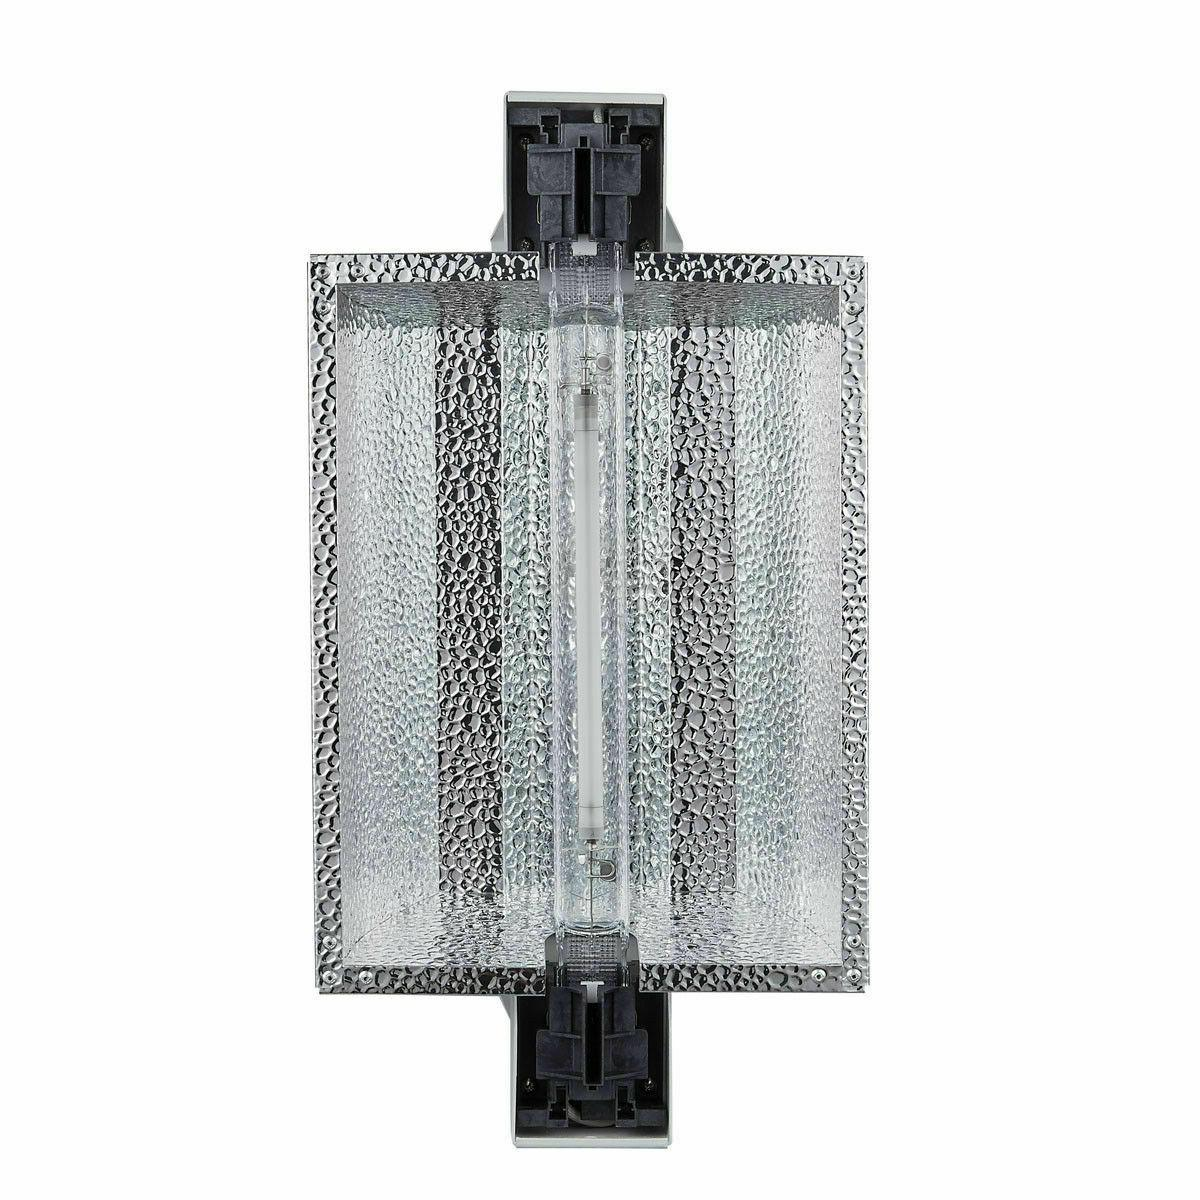 double ended hps reflector for grow light